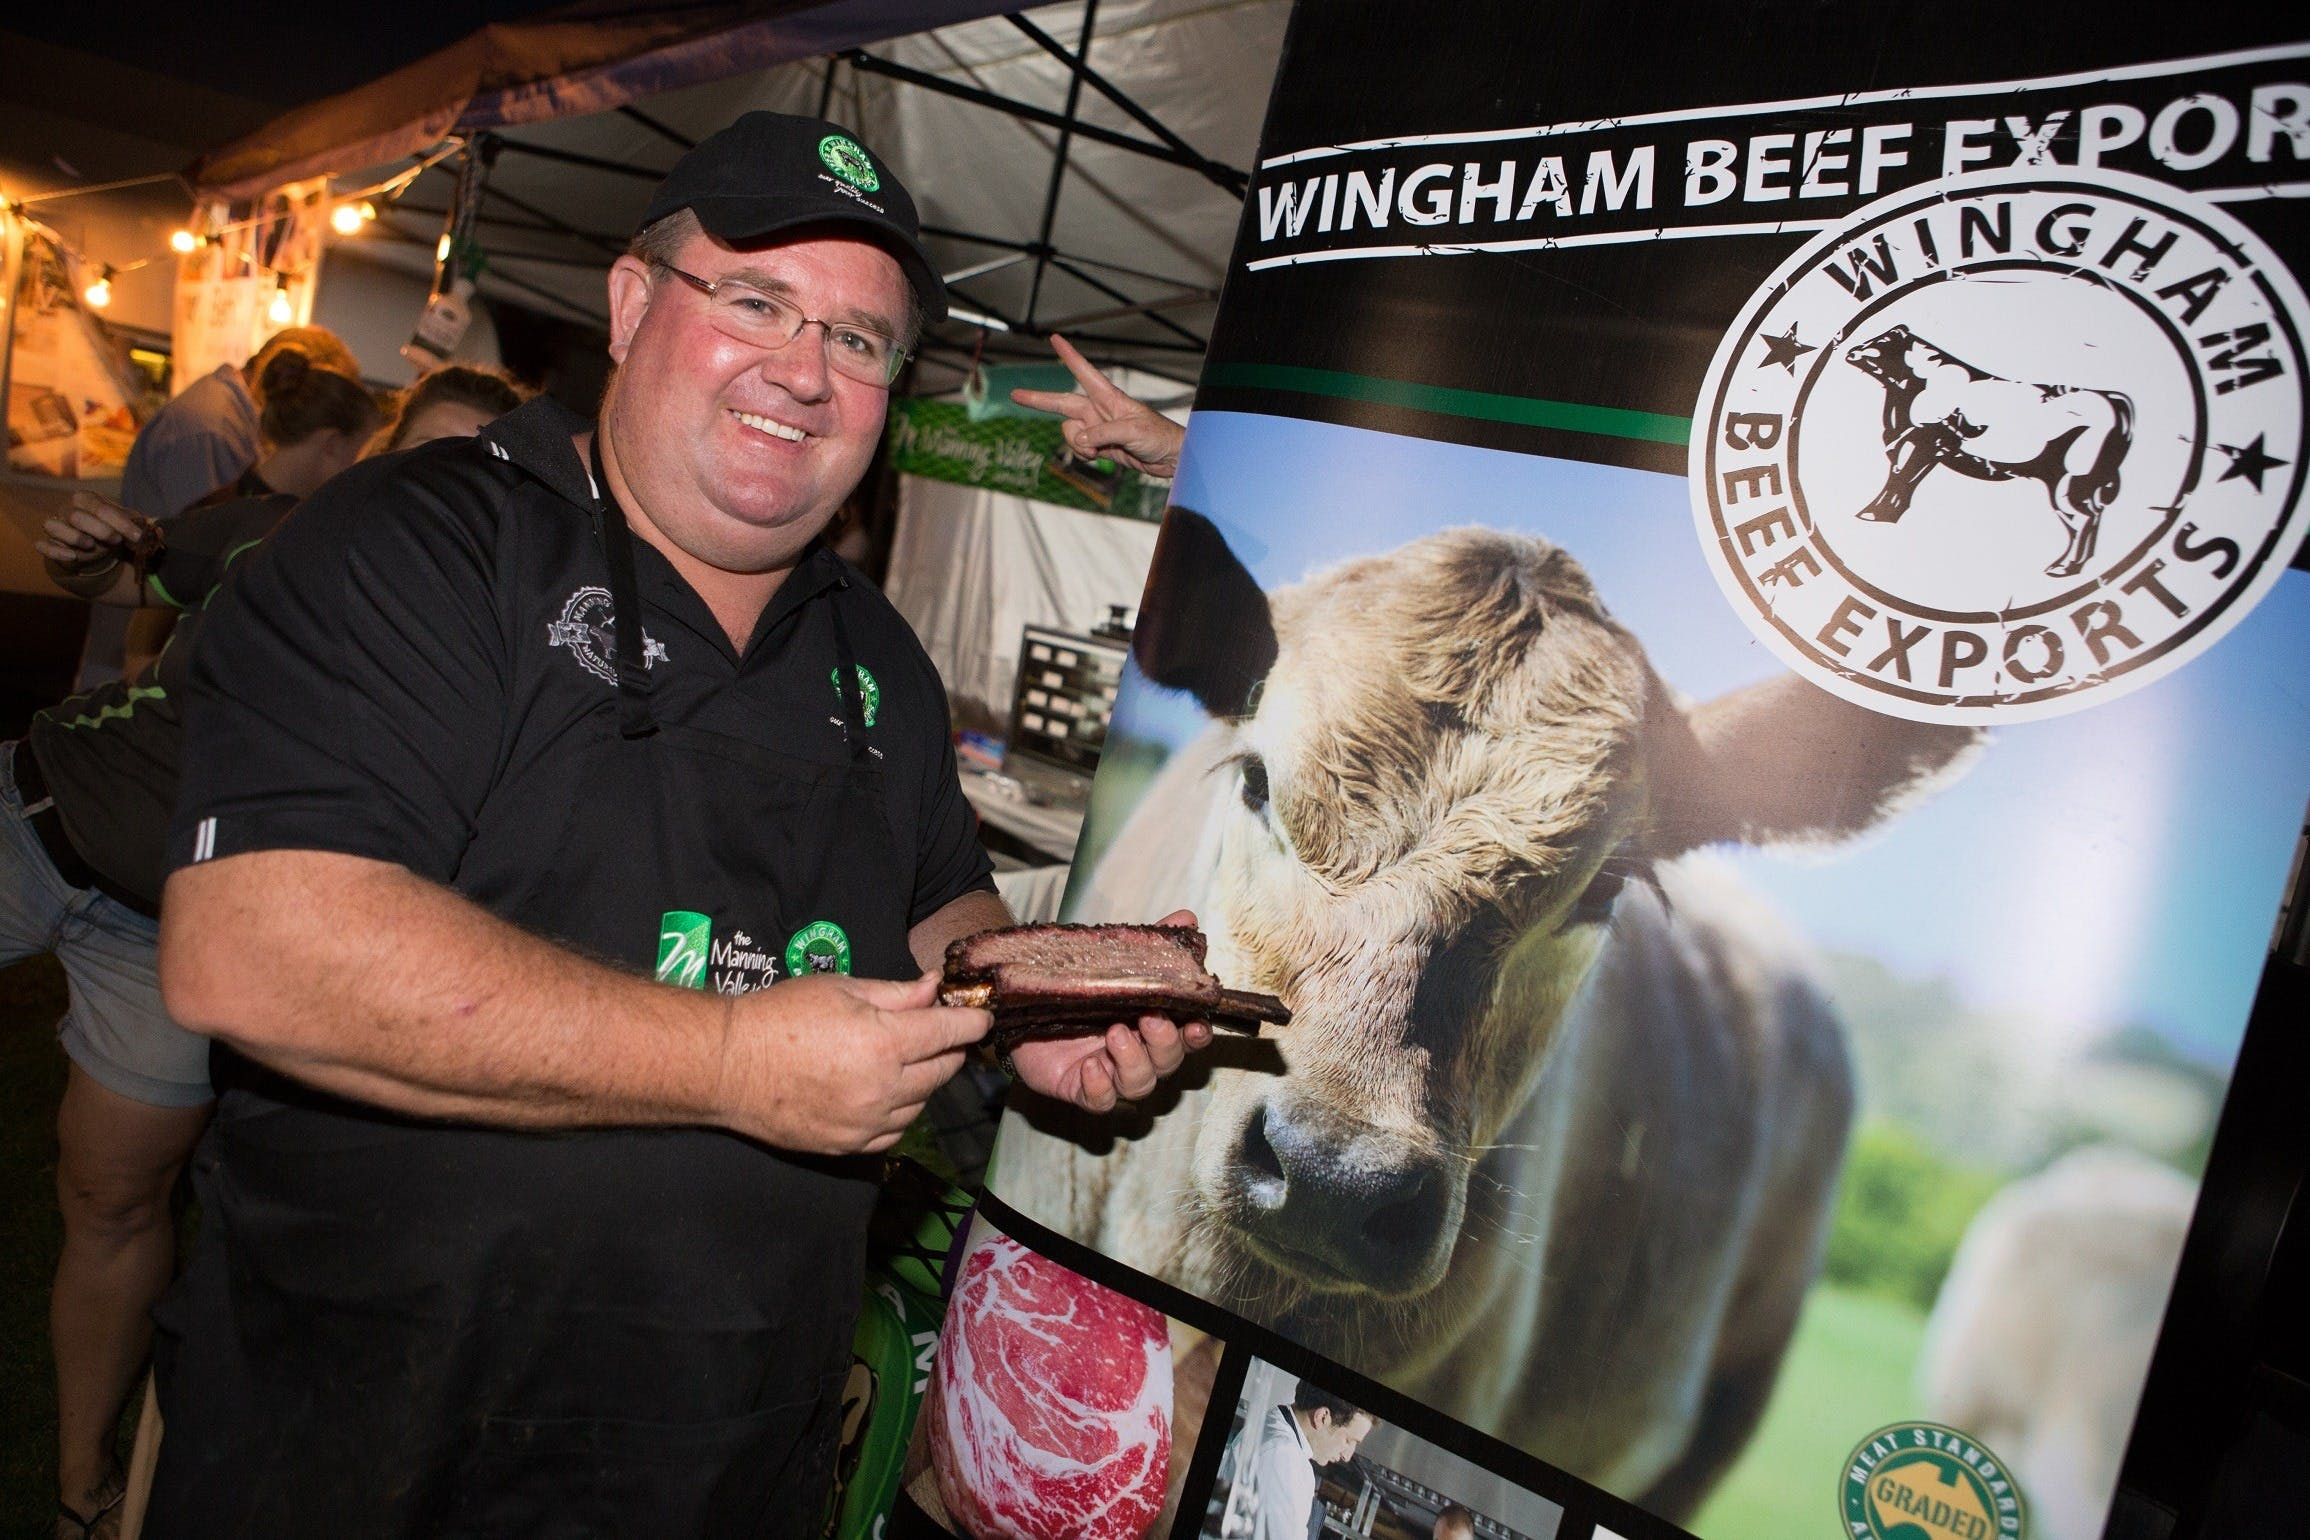 Wingham Beef Exports - Sydney Tourism